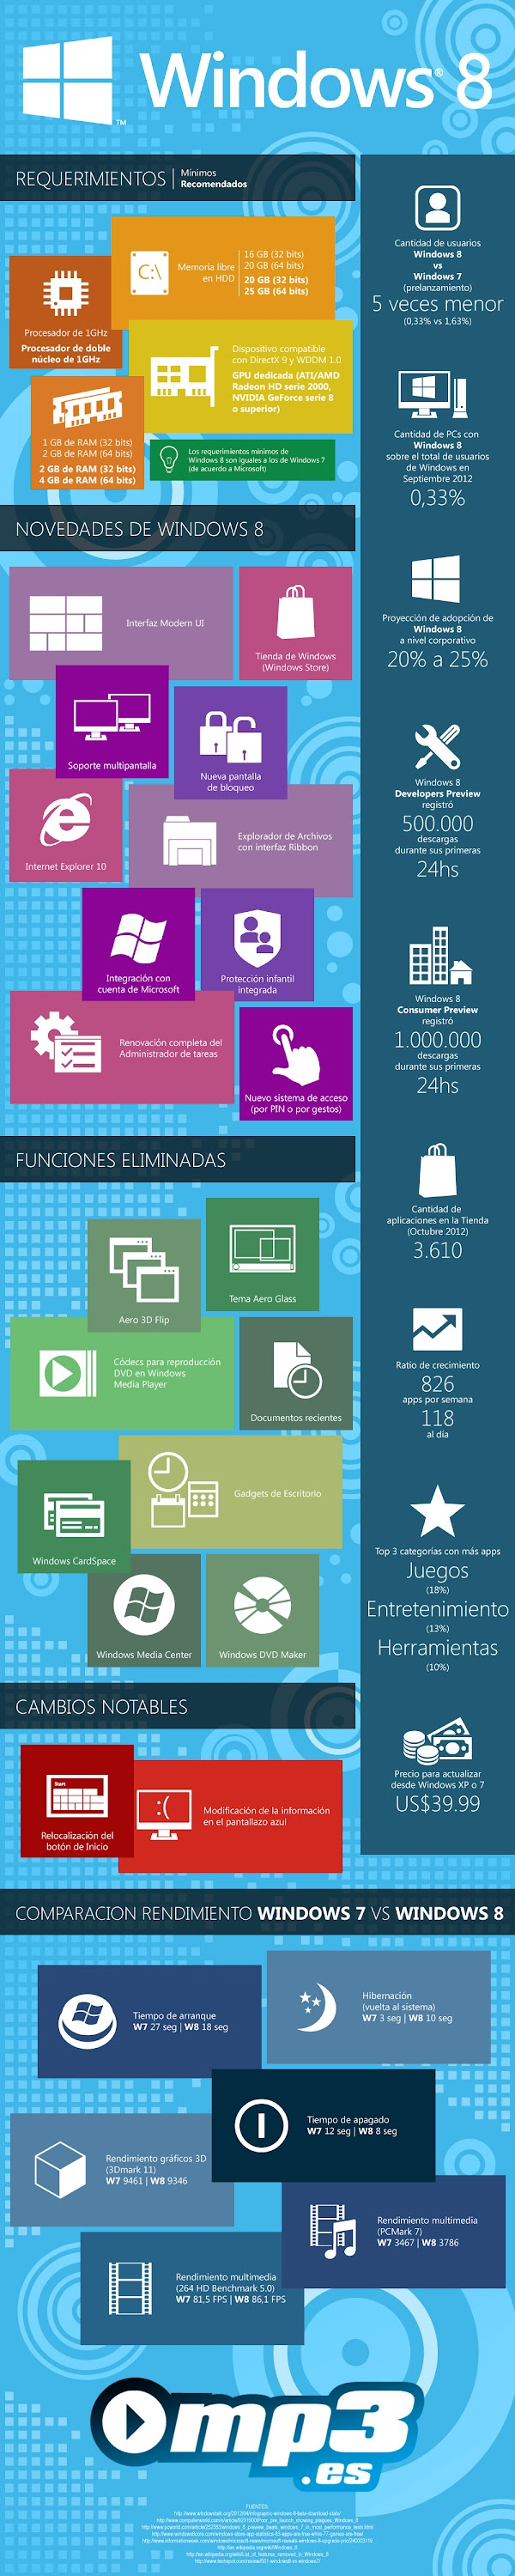 Infografía de Windows 8